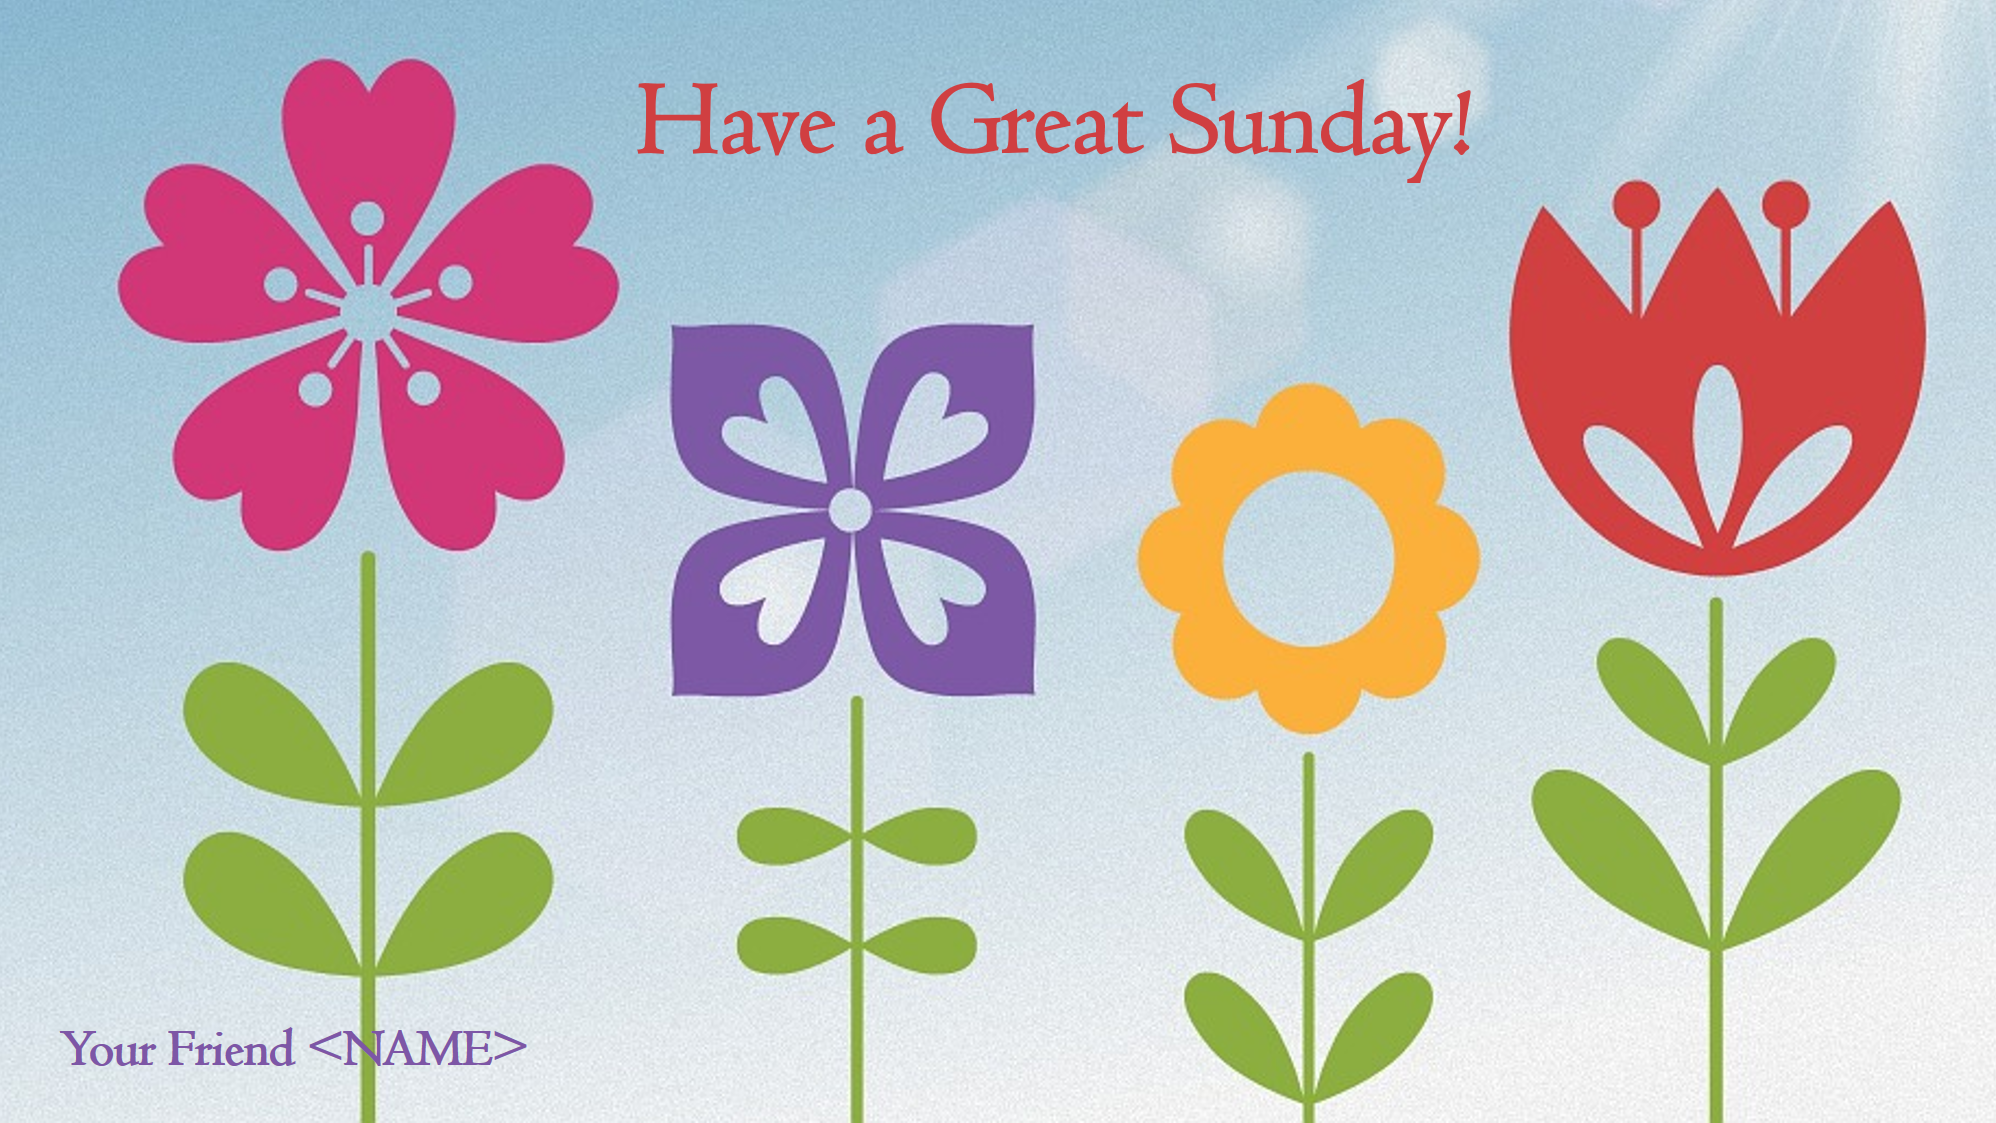 Free Good Morning Images With Flowers Sunday Templates At